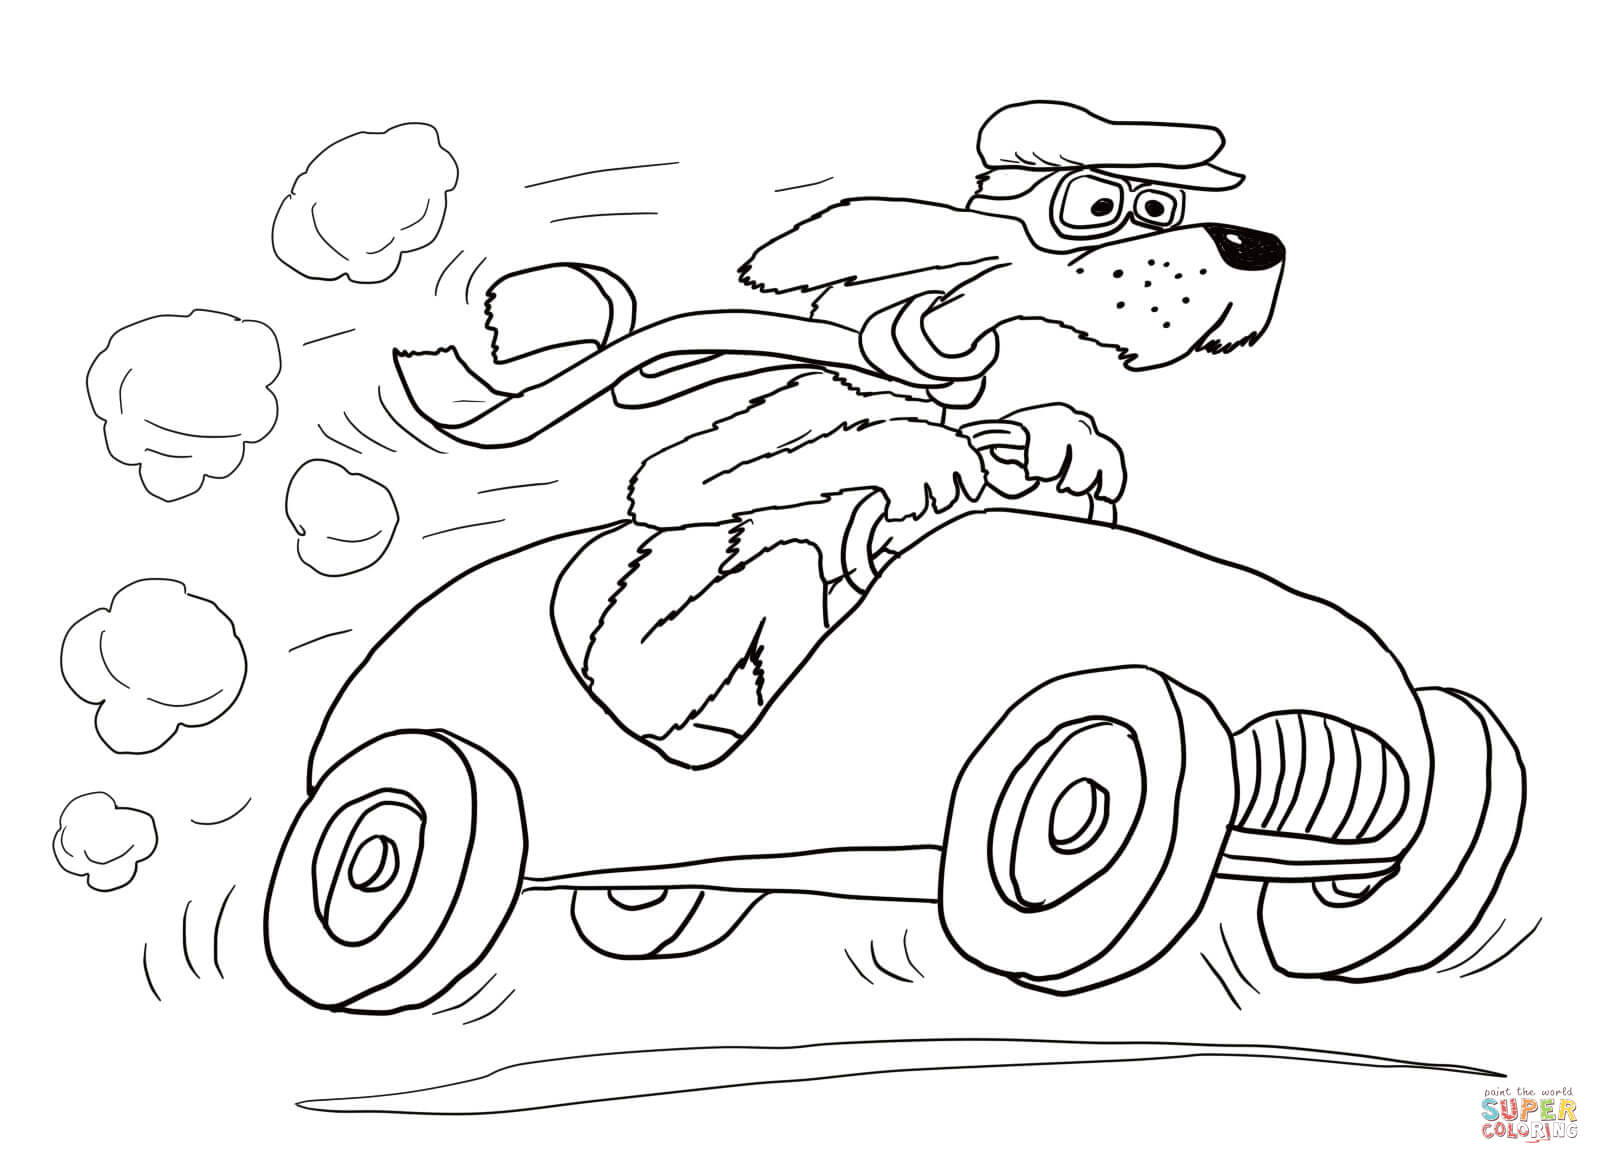 Go, Dog  Go! Coloring Page